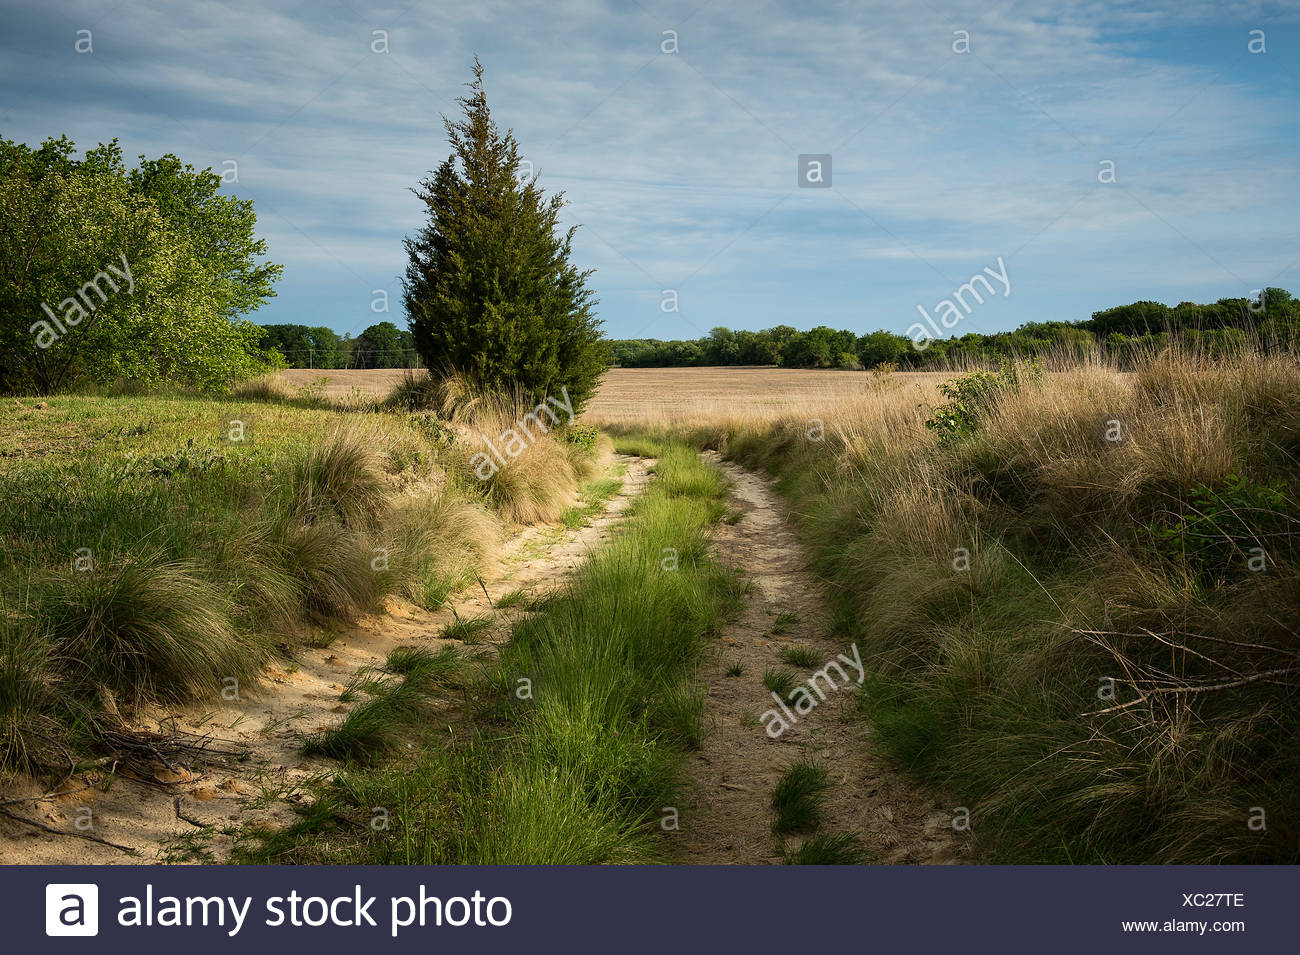 Unpaved country road. - Stock Image